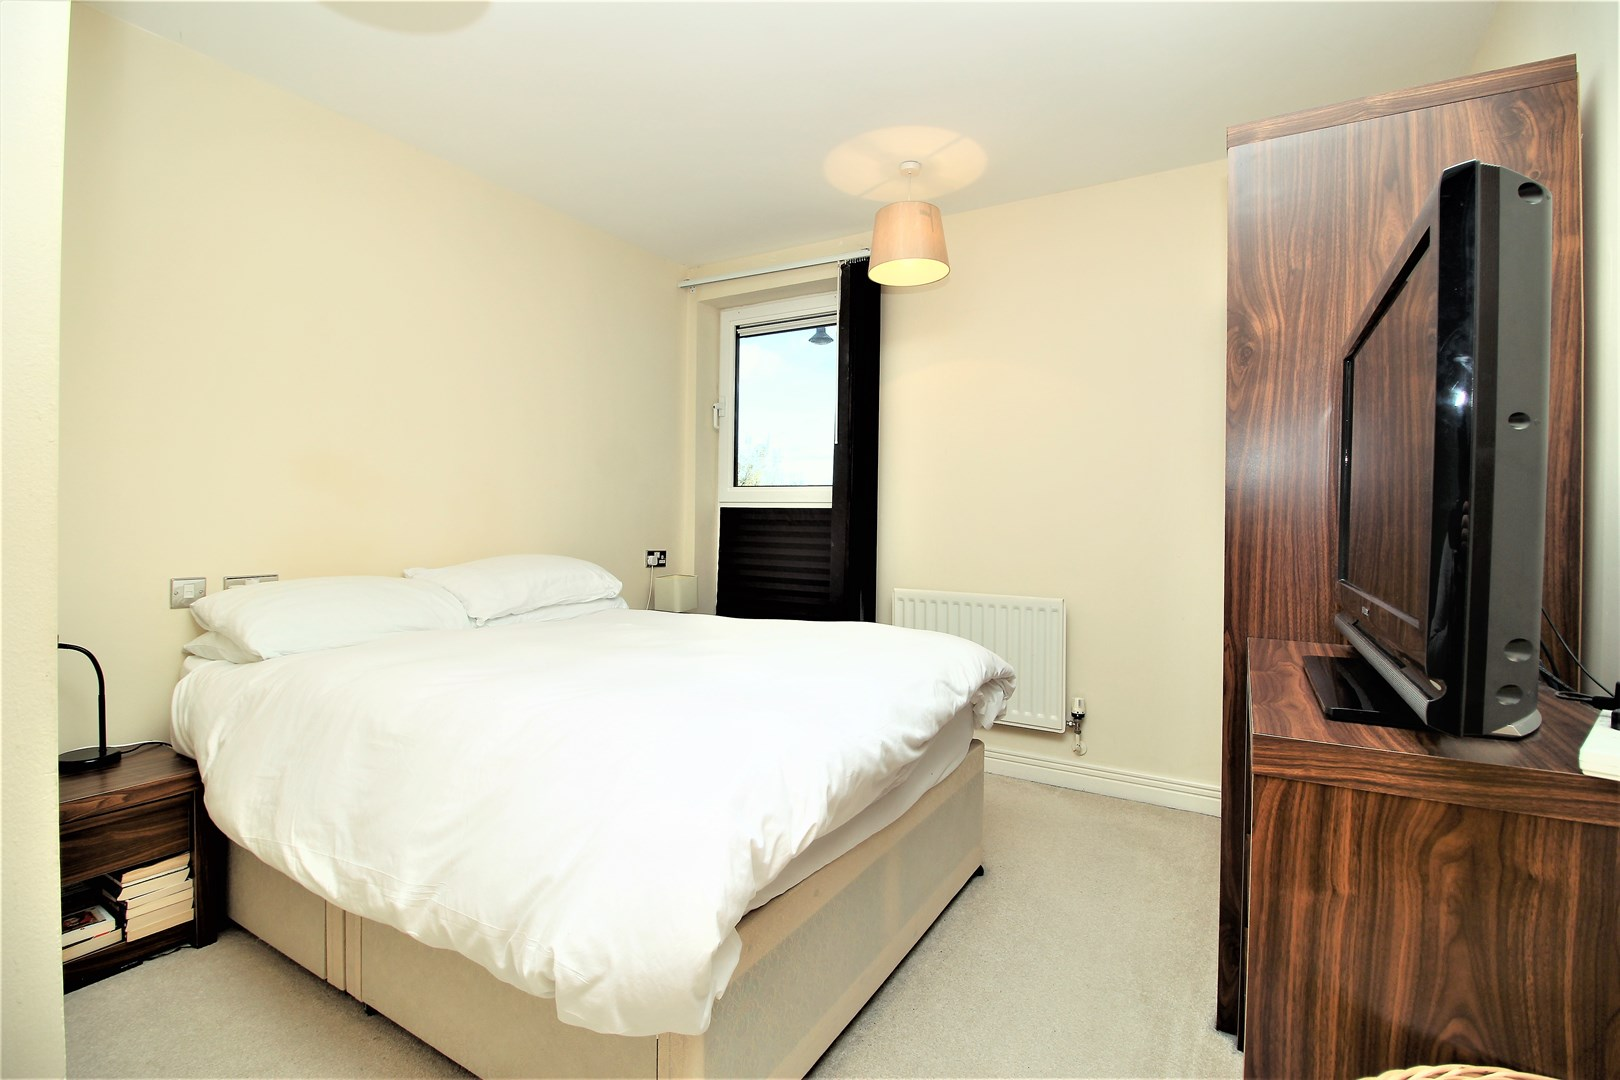 2 Bedroom Flat For Sale In Erebus Drive Thamesmead Se28 London